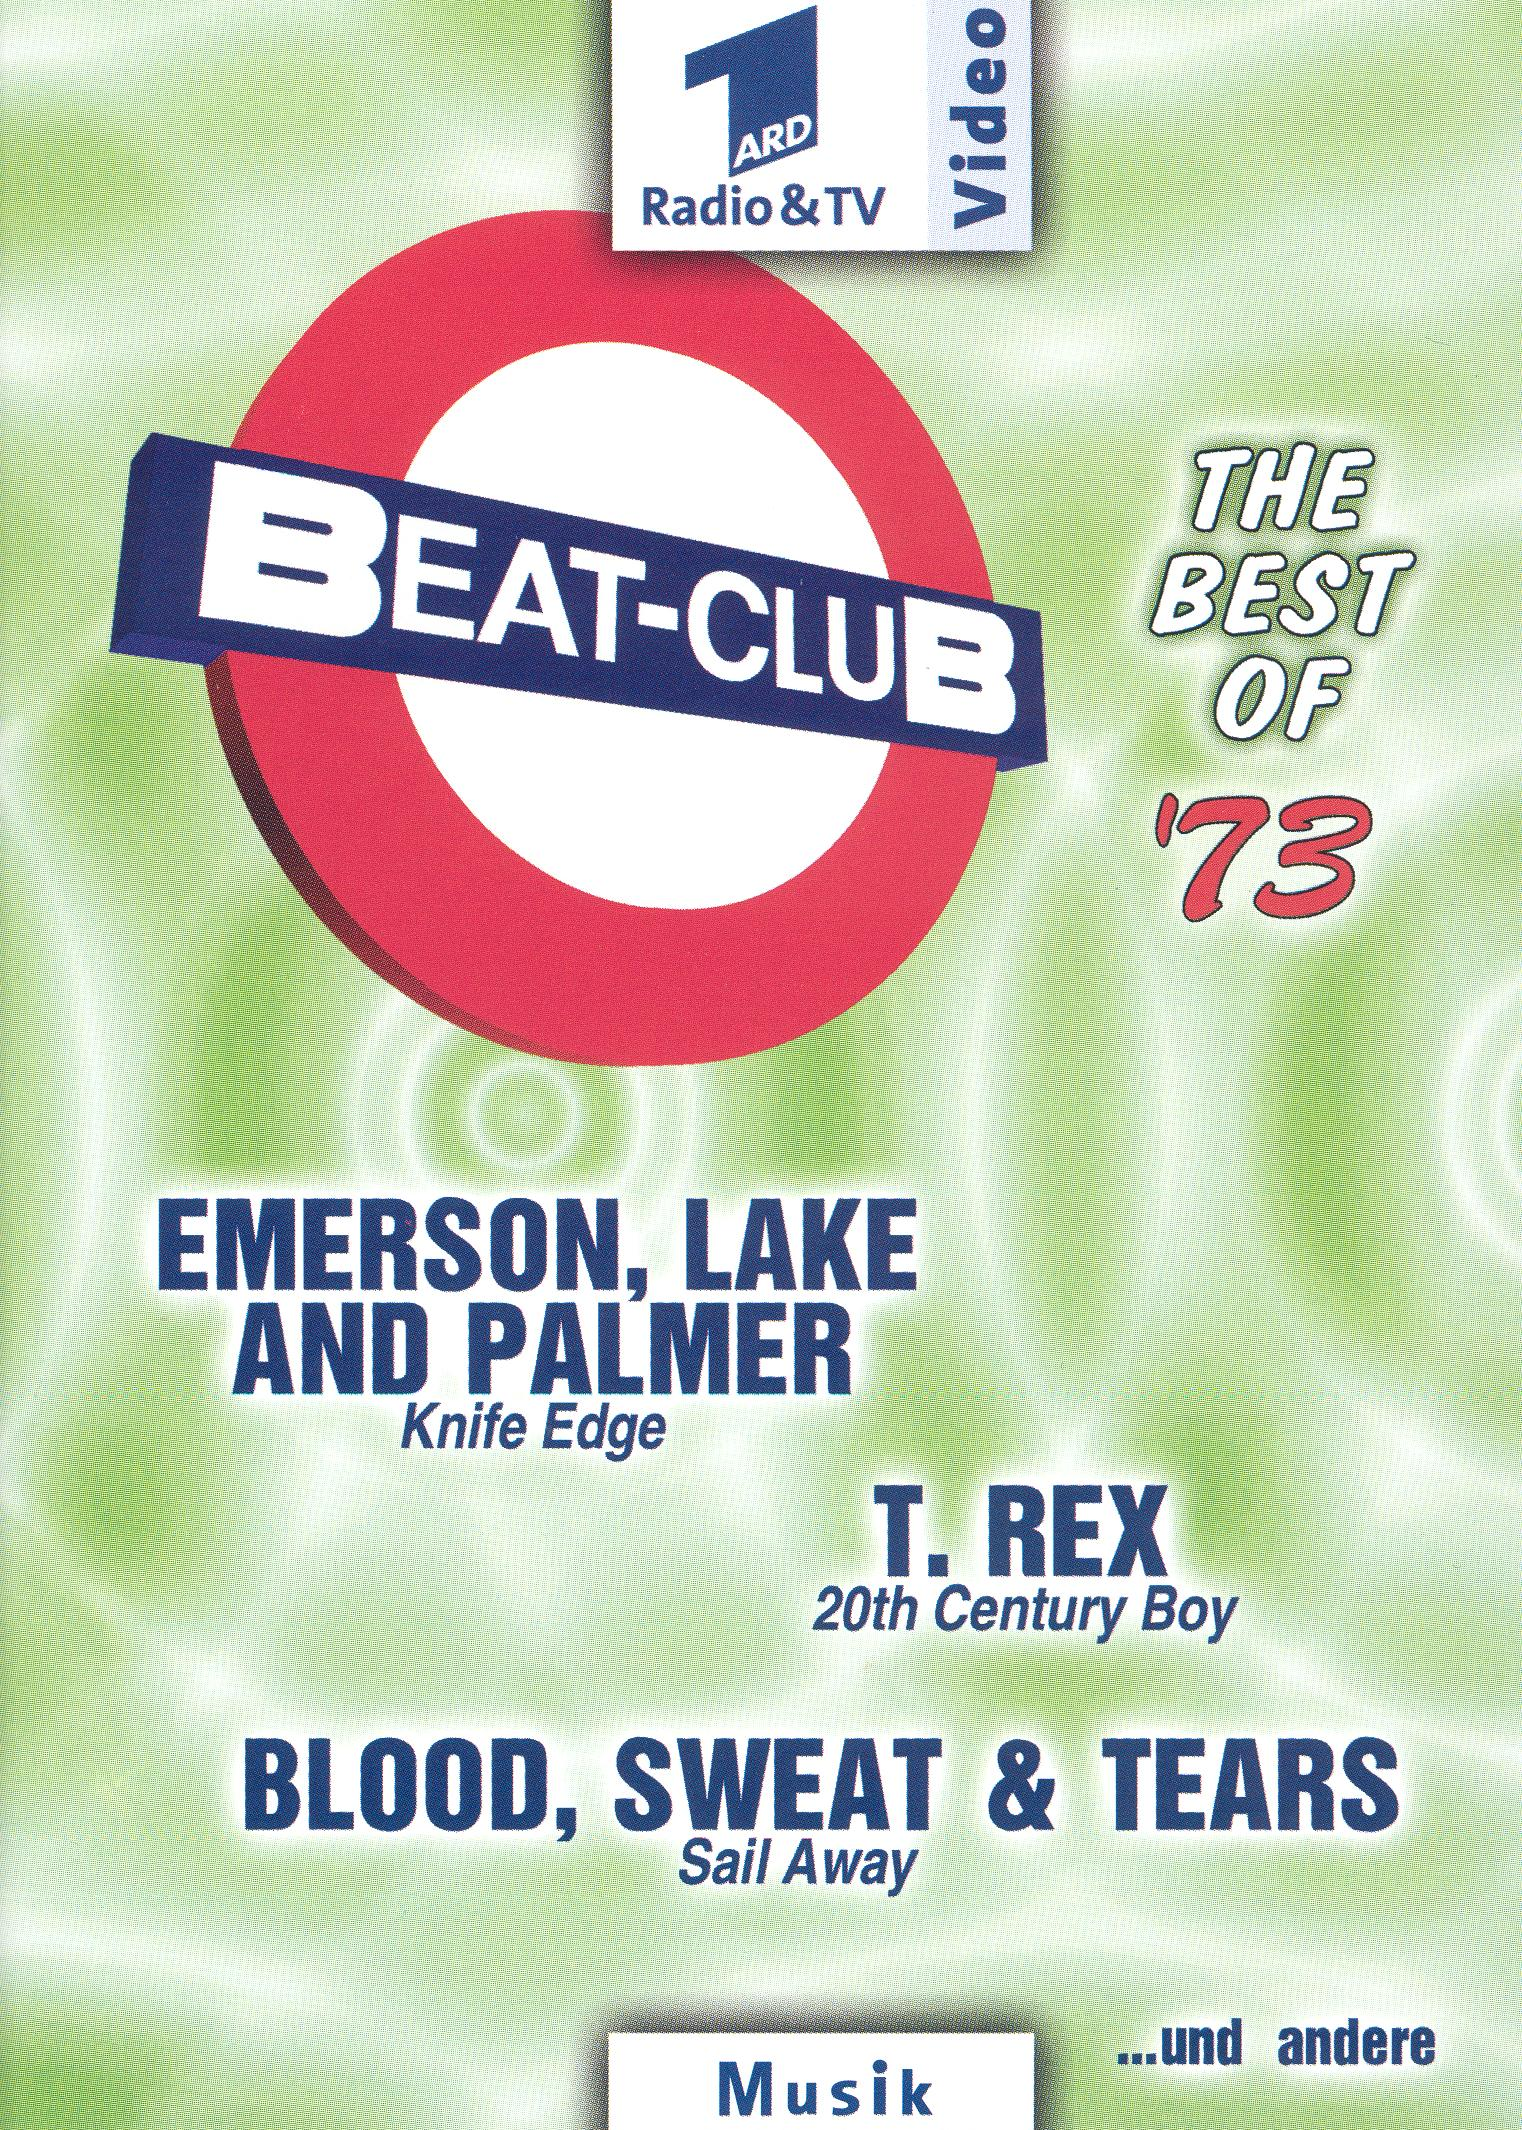 The Beat-Club: The Best of '73